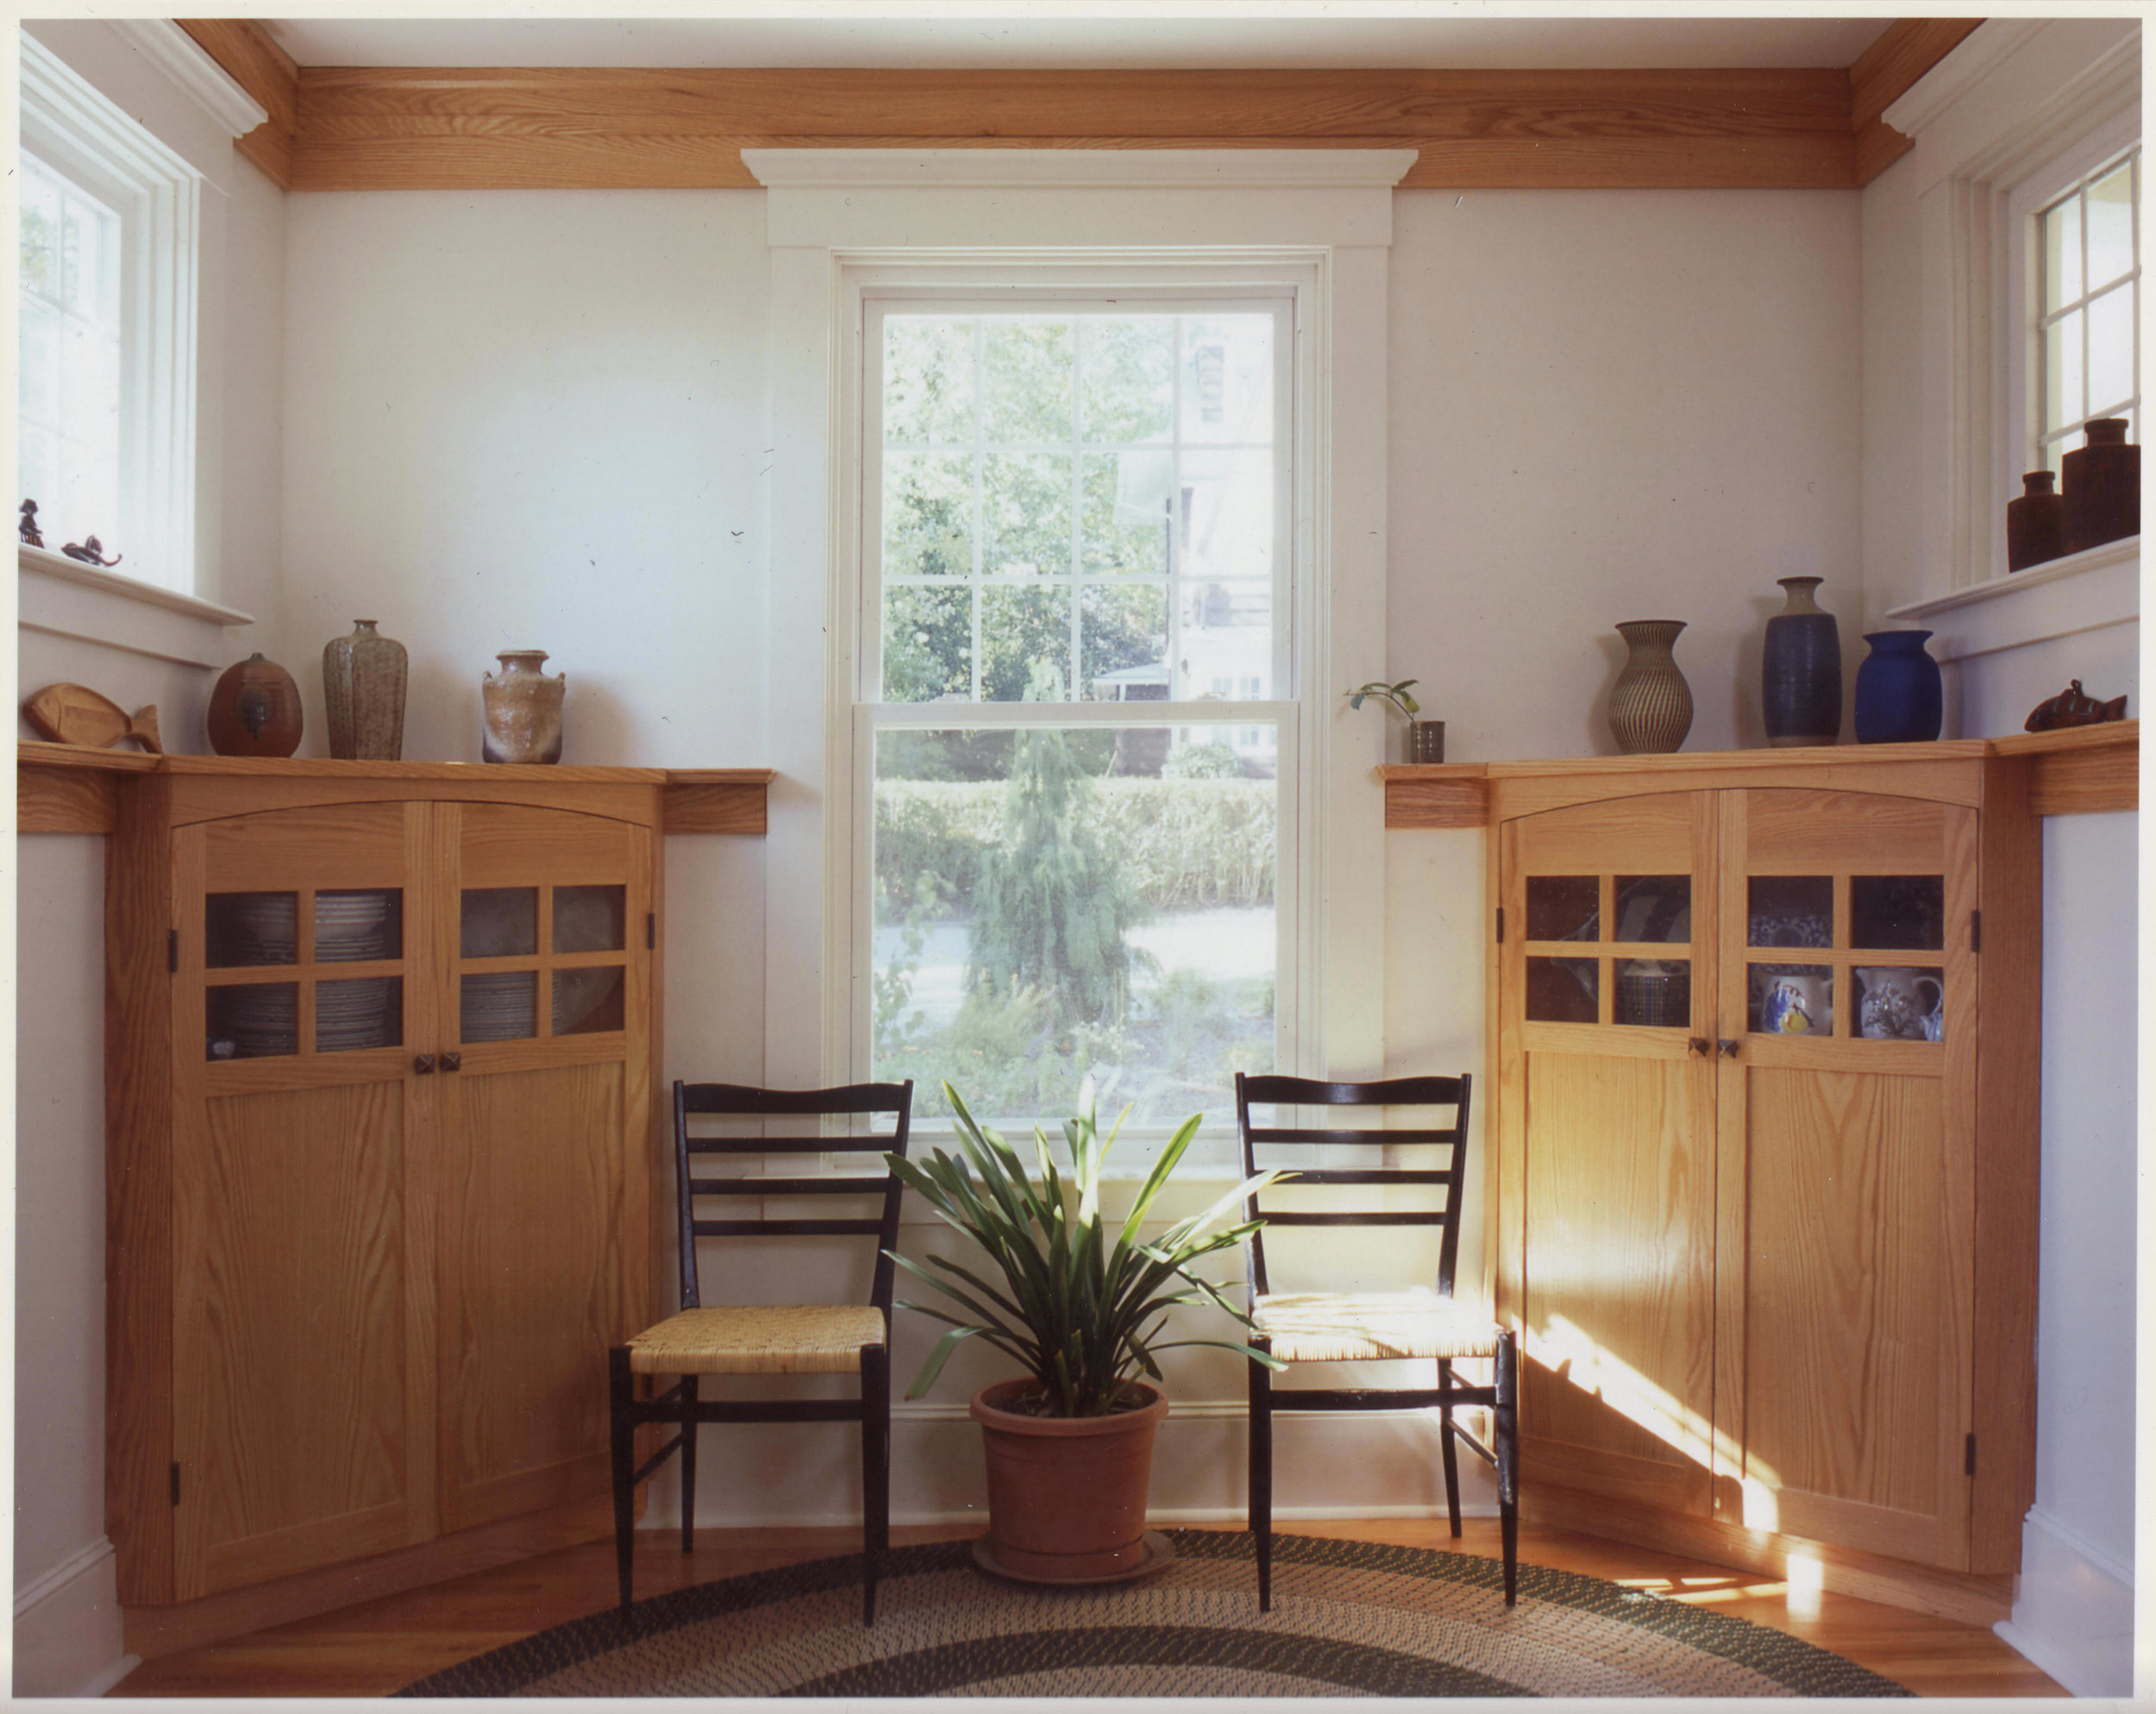 Custom designed corner cabinets embrace the new breakfast alcove, created by enclosing an existing exterior porch.